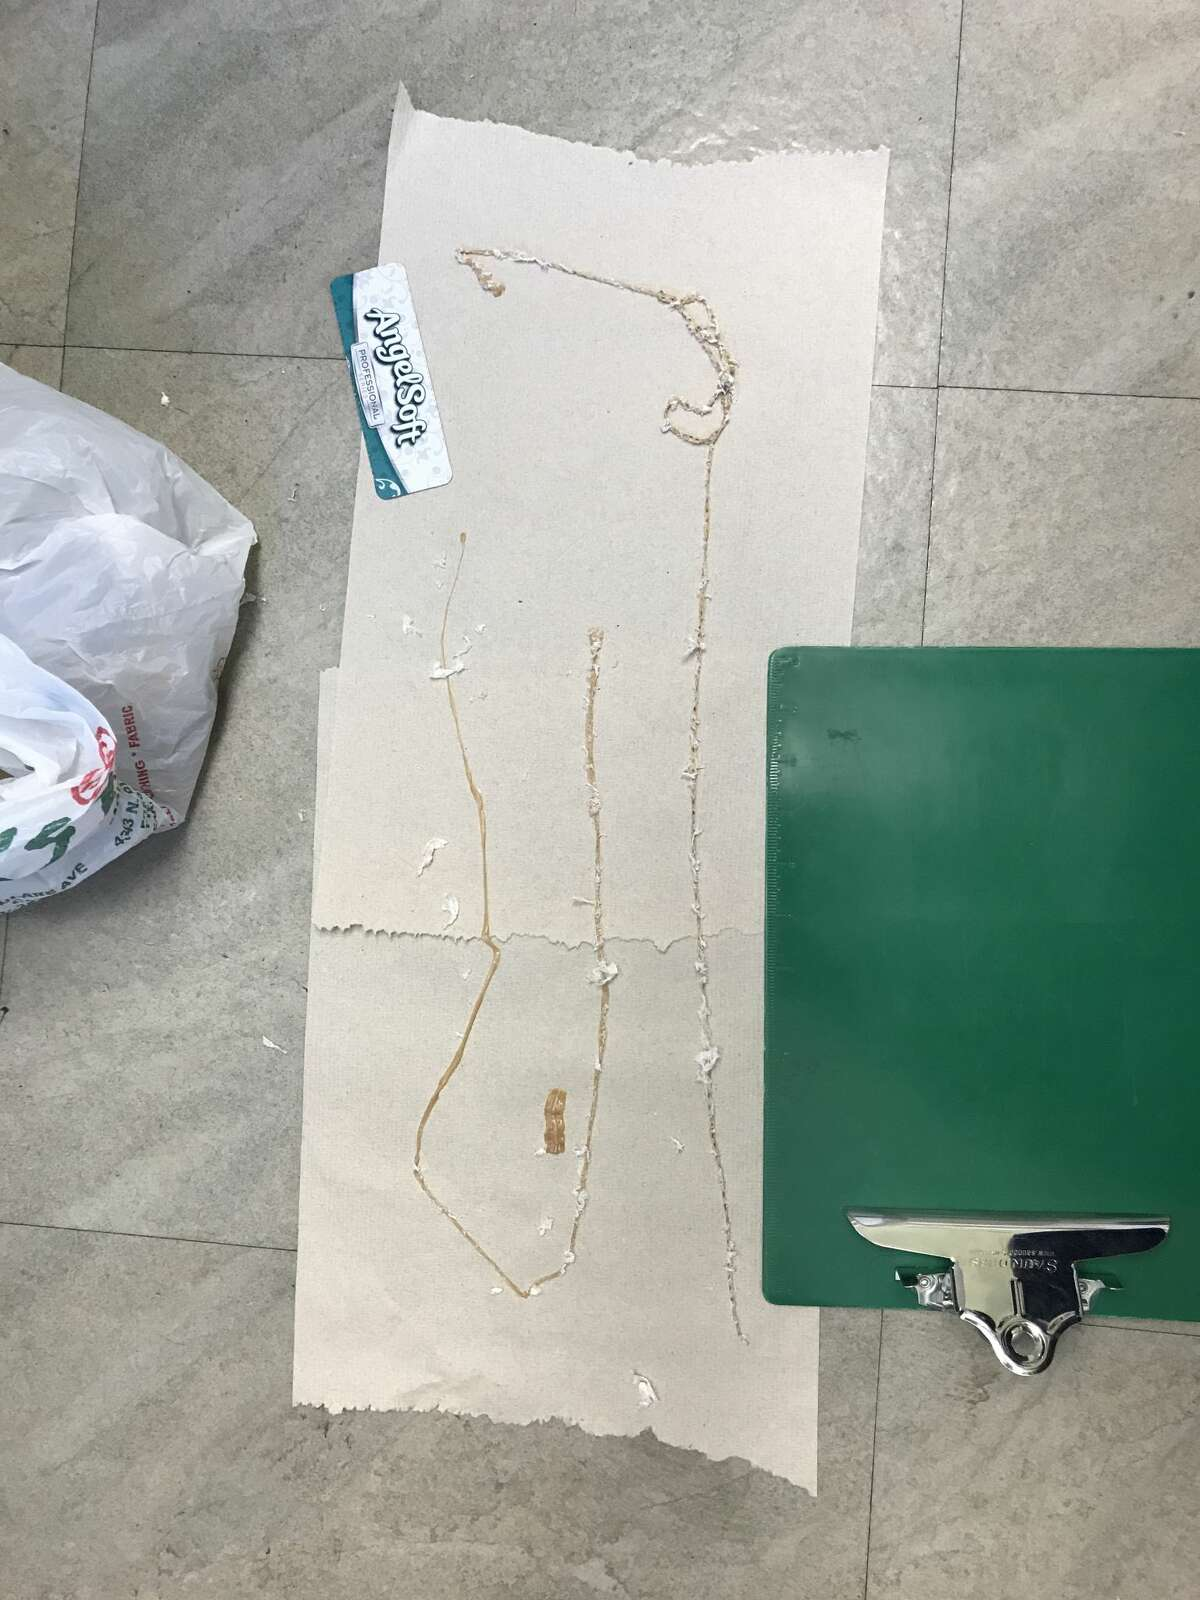 A Fresno man with a daily sushi habit had a 5 1/2-foot tapeworm lodged in his intestines, says a doctor at Fresno's Community Regional Medical Center.